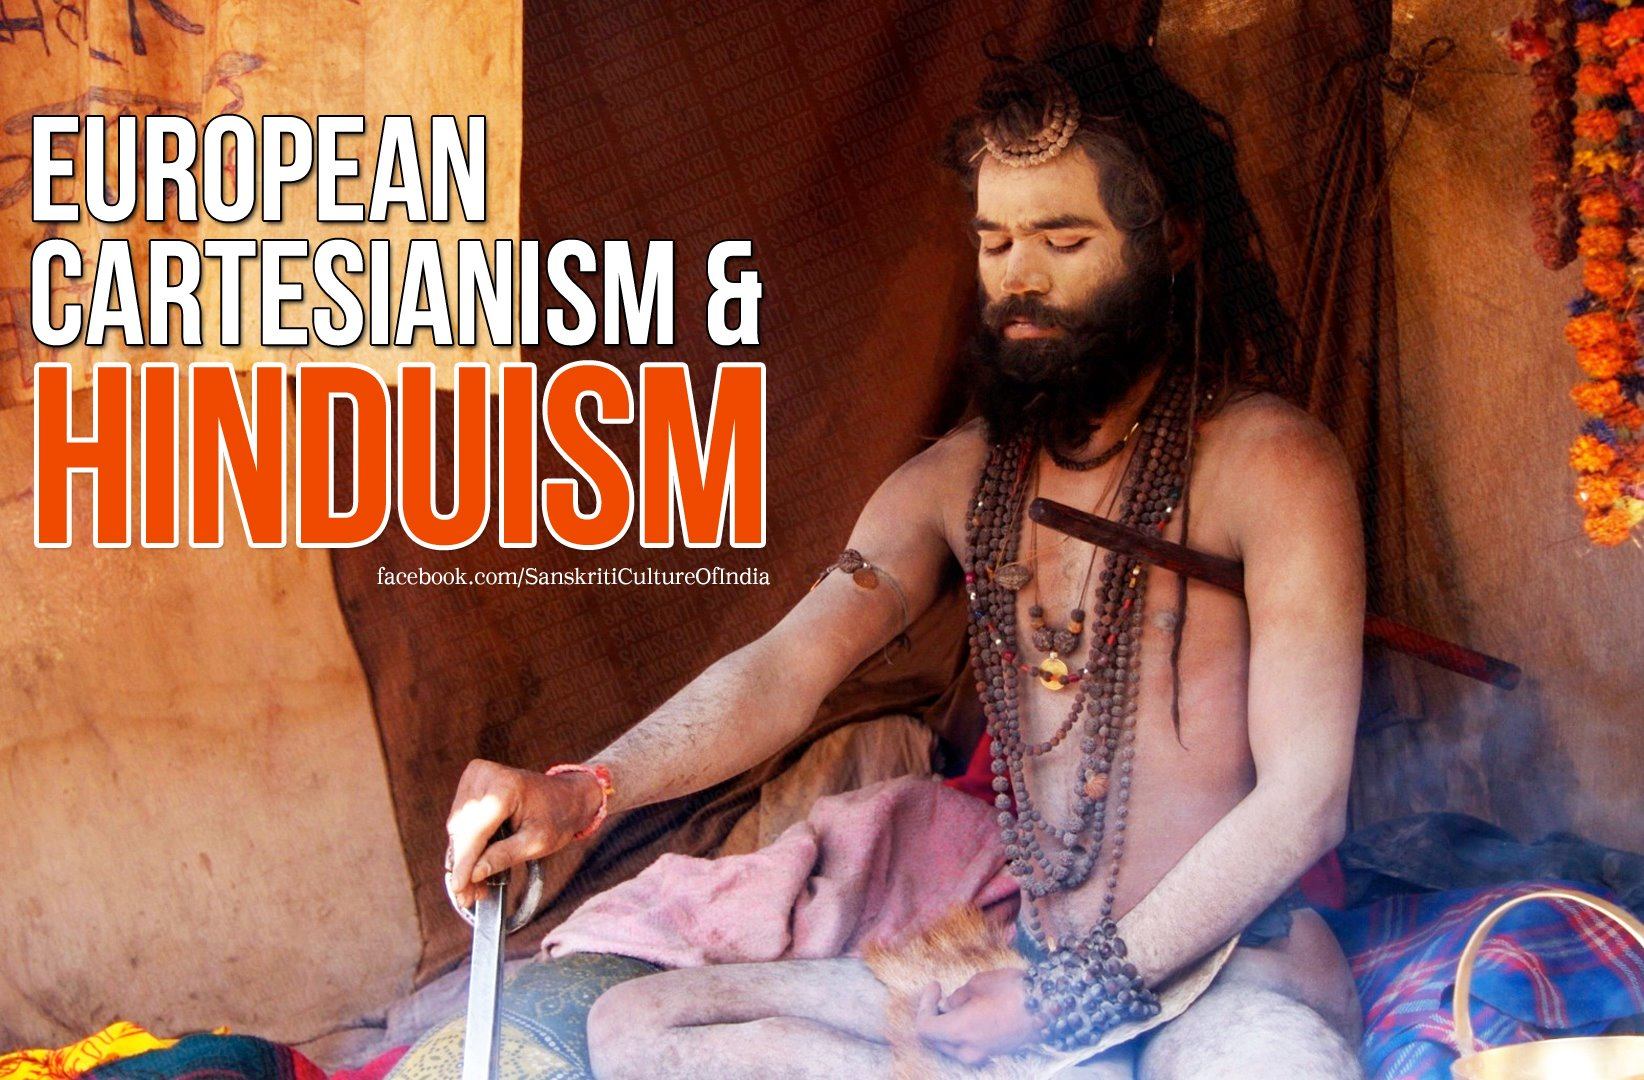 European Cartesianism and Hinduism!